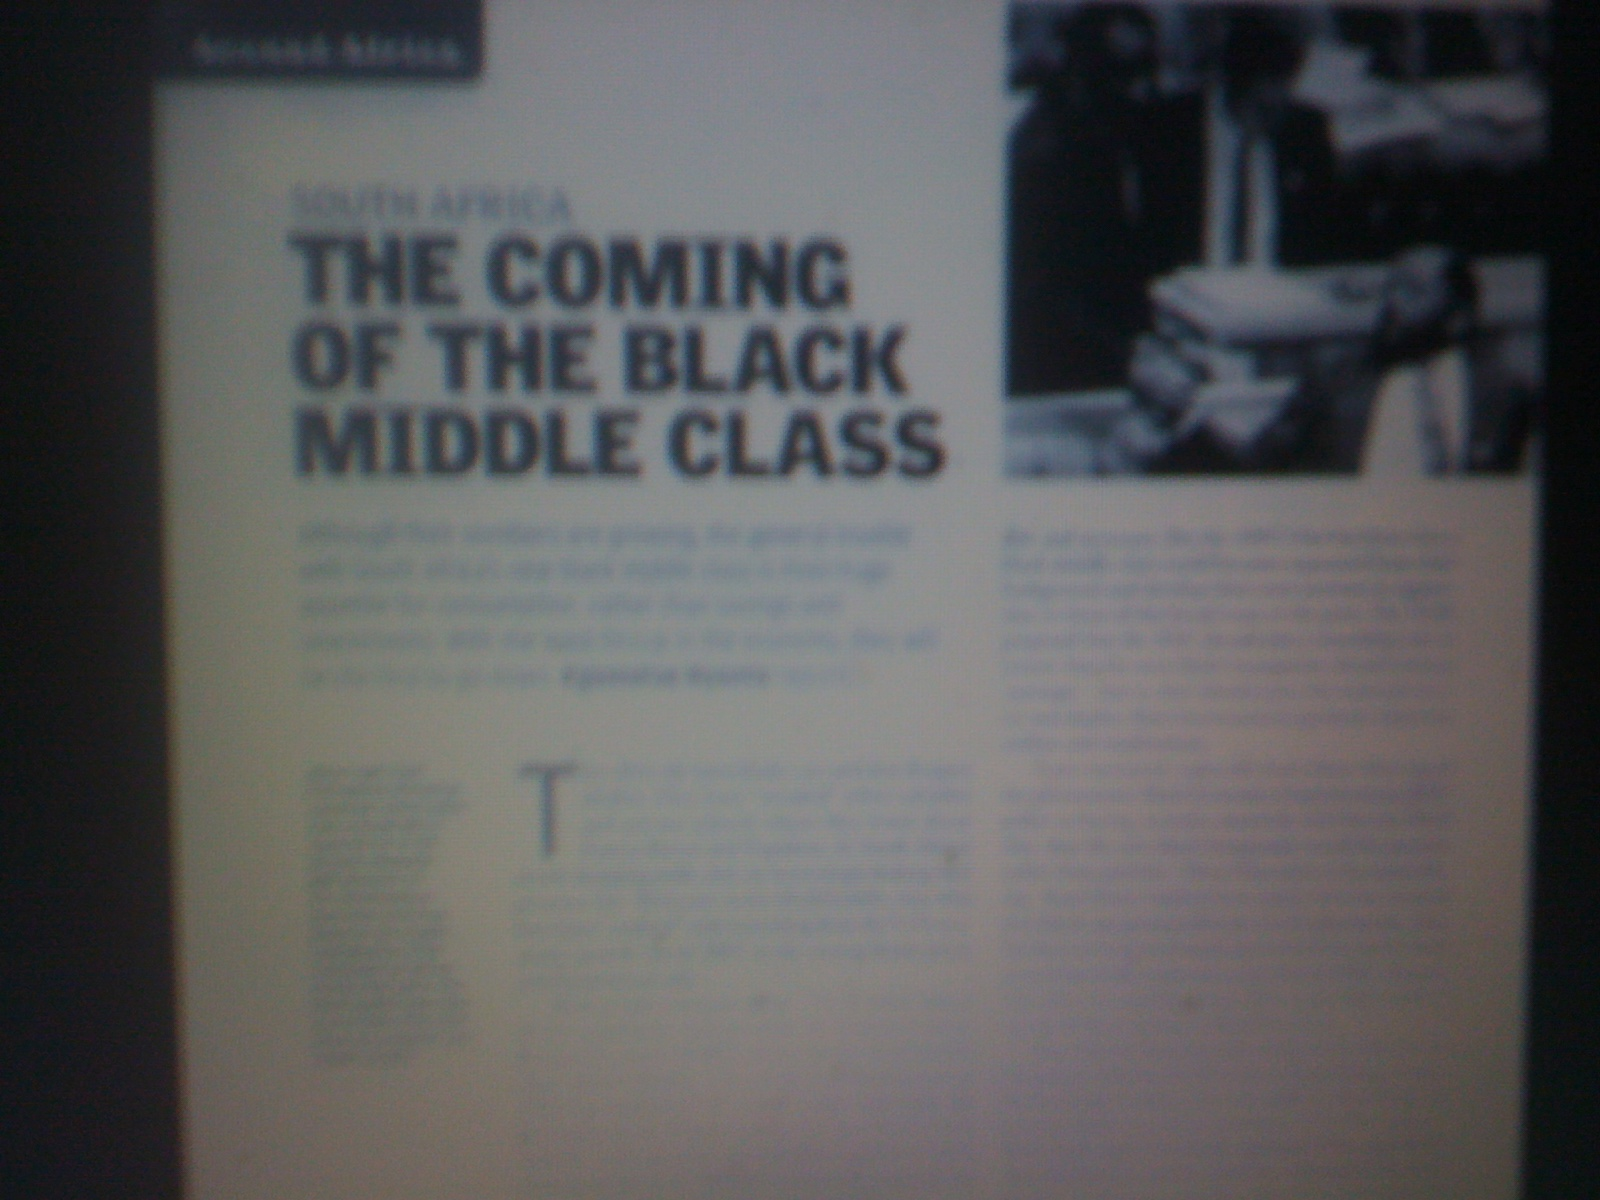 middle class blacks burden The black middle class consists of black americans who have middle-class status within the american class structure it is a societal level within the african-american community that primarily began to develop in the early 1960s, [1] [2] when the ongoing civil rights movement [3] led to the outlawing of de jure racial segregation.